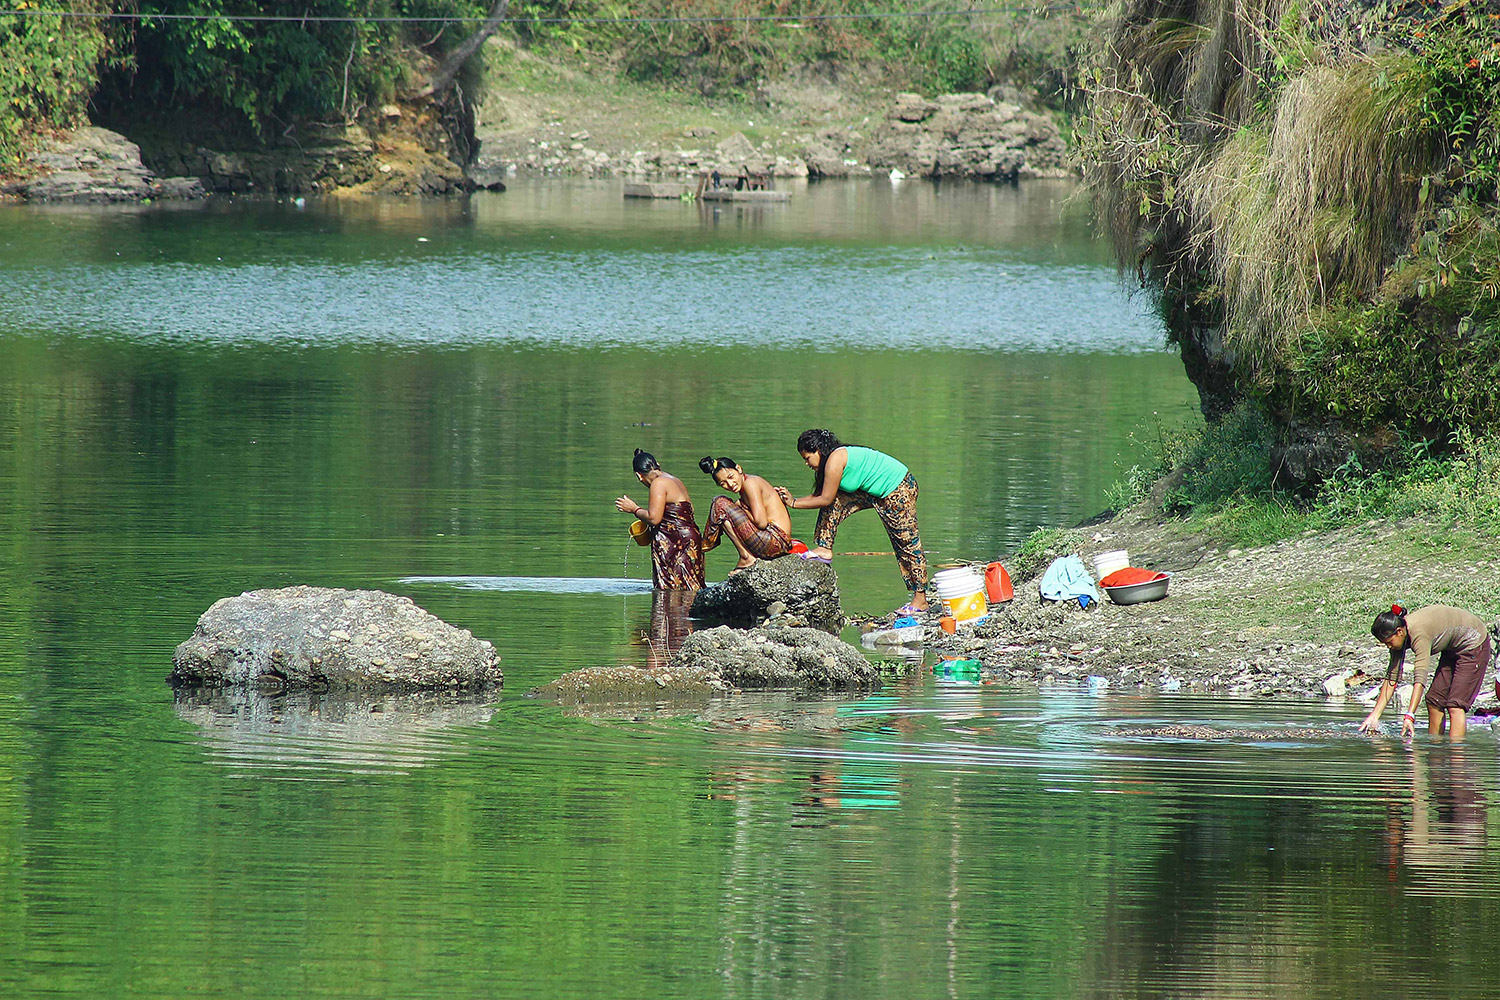 Despite restrictions to bathe and wash laundry in Phewa Taal, awareness to safeguard the ecological sanctity of the lake seems to have made no progress. Photo: Samir Baral